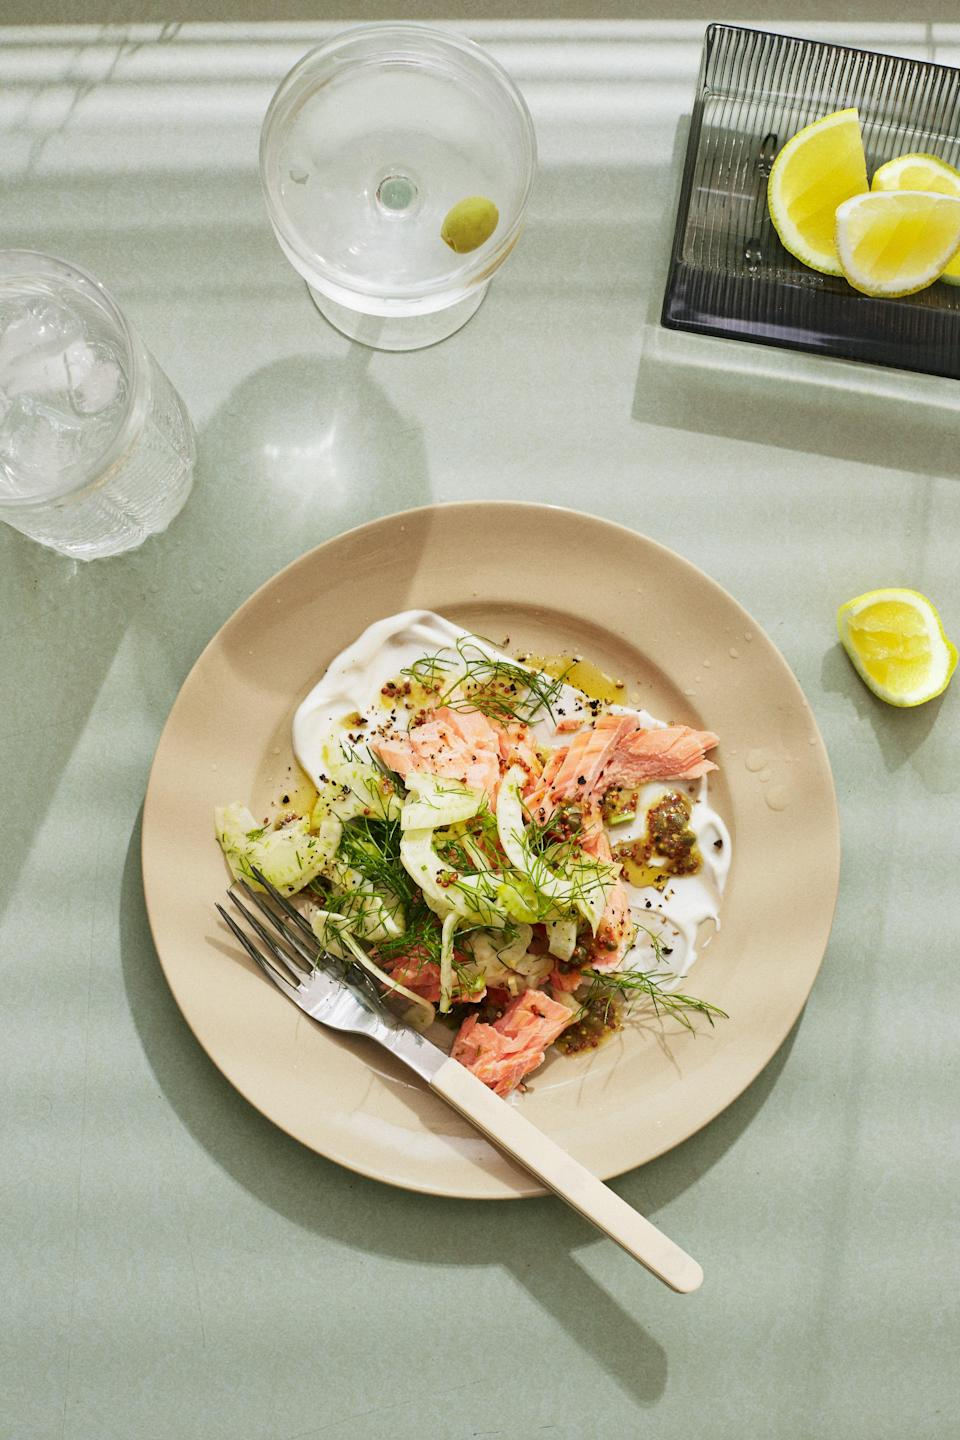 """This is entrée recipe you want to serve to guests when you have no time to cook and have no desire to turn on the oven. Hot-smoked salmon is sold wherever you purchase gravlax and other cured fish; in the supermarket it's probably stocked alongside packages of smoked trout. <a href=""""https://www.bonappetit.com/recipe/hot-smoked-salmon-with-salted-yogurt-and-fennel?mbid=synd_yahoo_rss"""" rel=""""nofollow noopener"""" target=""""_blank"""" data-ylk=""""slk:See recipe."""" class=""""link rapid-noclick-resp"""">See recipe.</a>"""